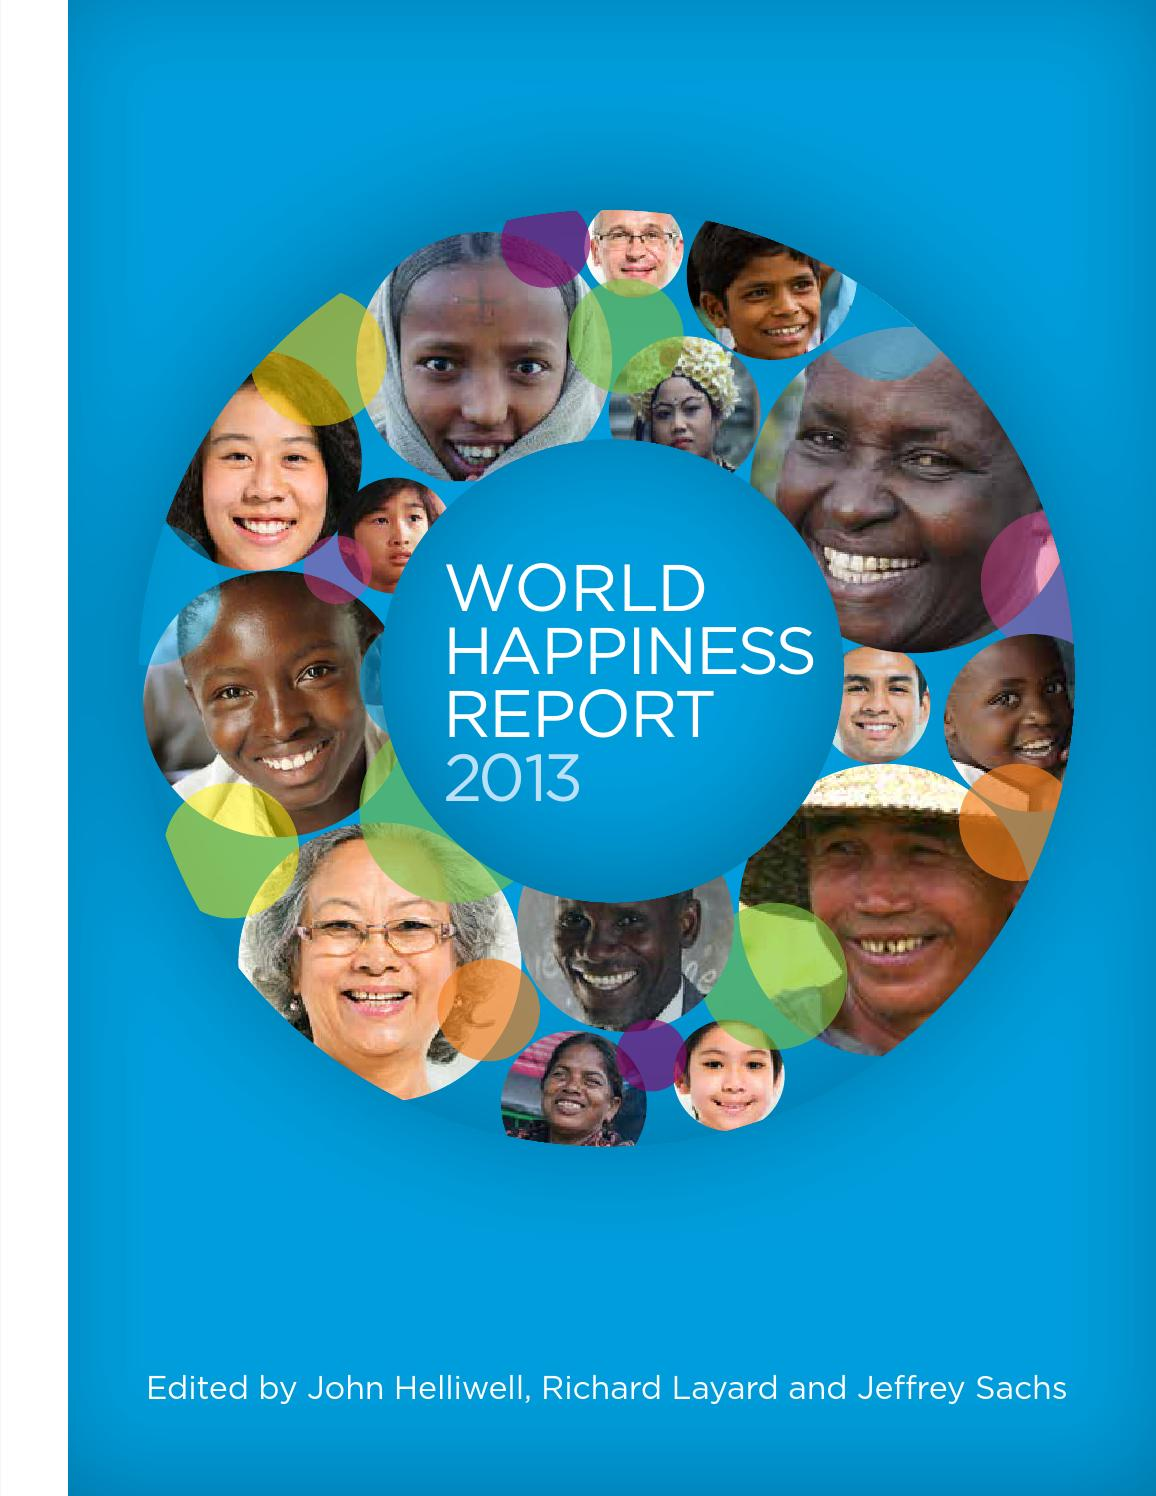 World Happiness Report 2013 by Earth Institute, Columbia University